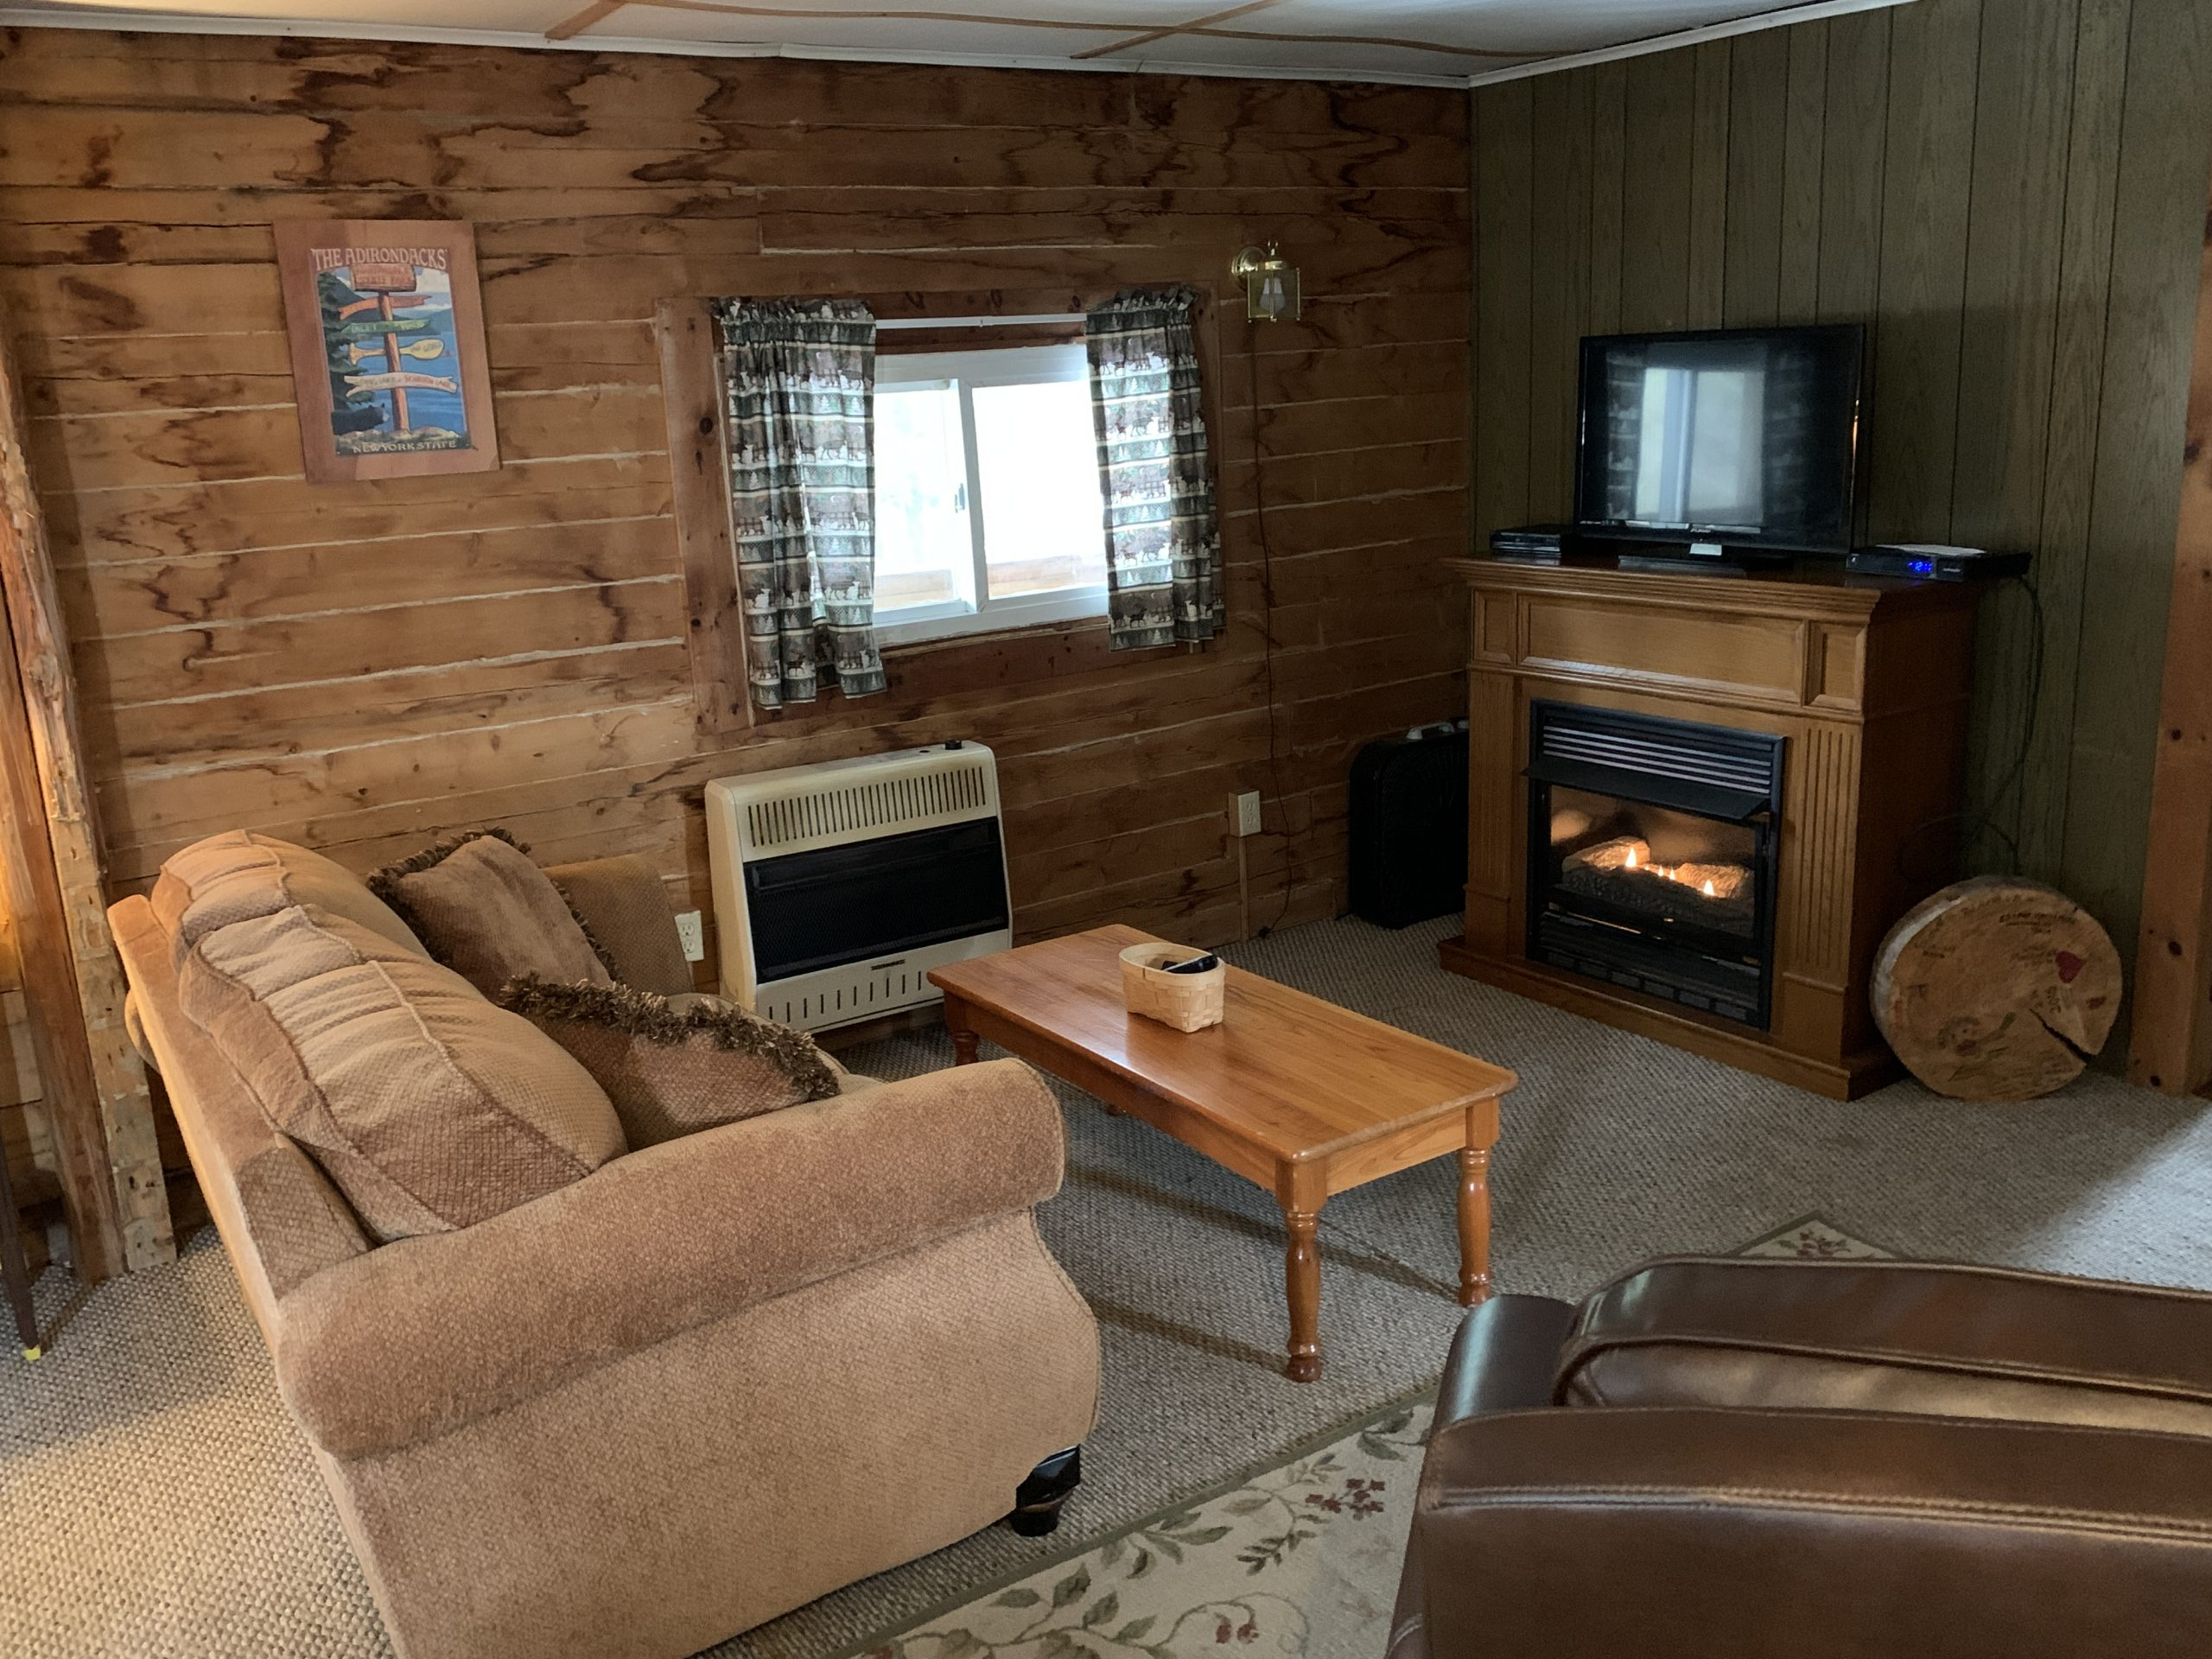 Cabin interior with fireplace